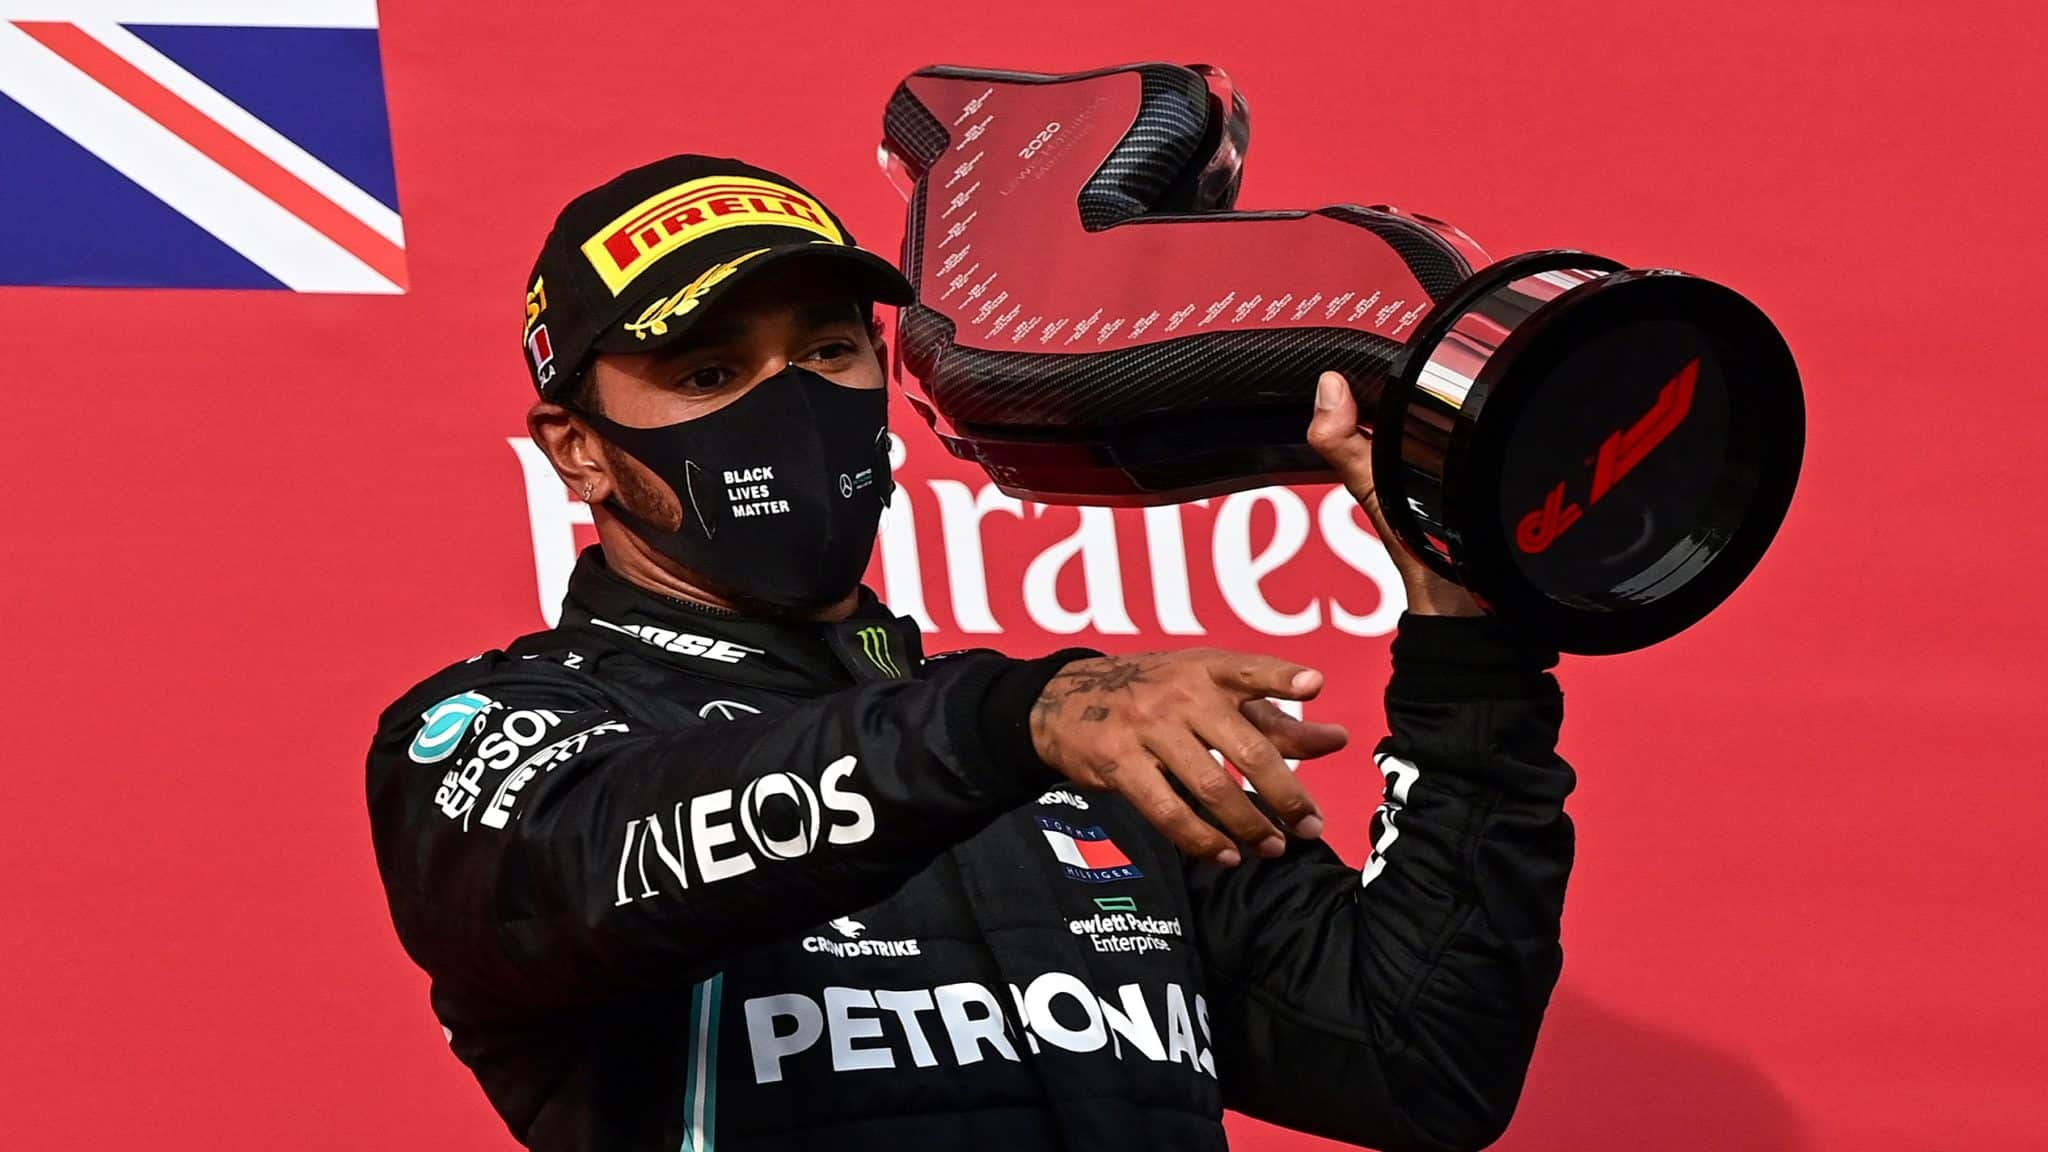 Lewis Hamilton Equaled Michael Schumacher'S Record Of 7 World Titles This Year